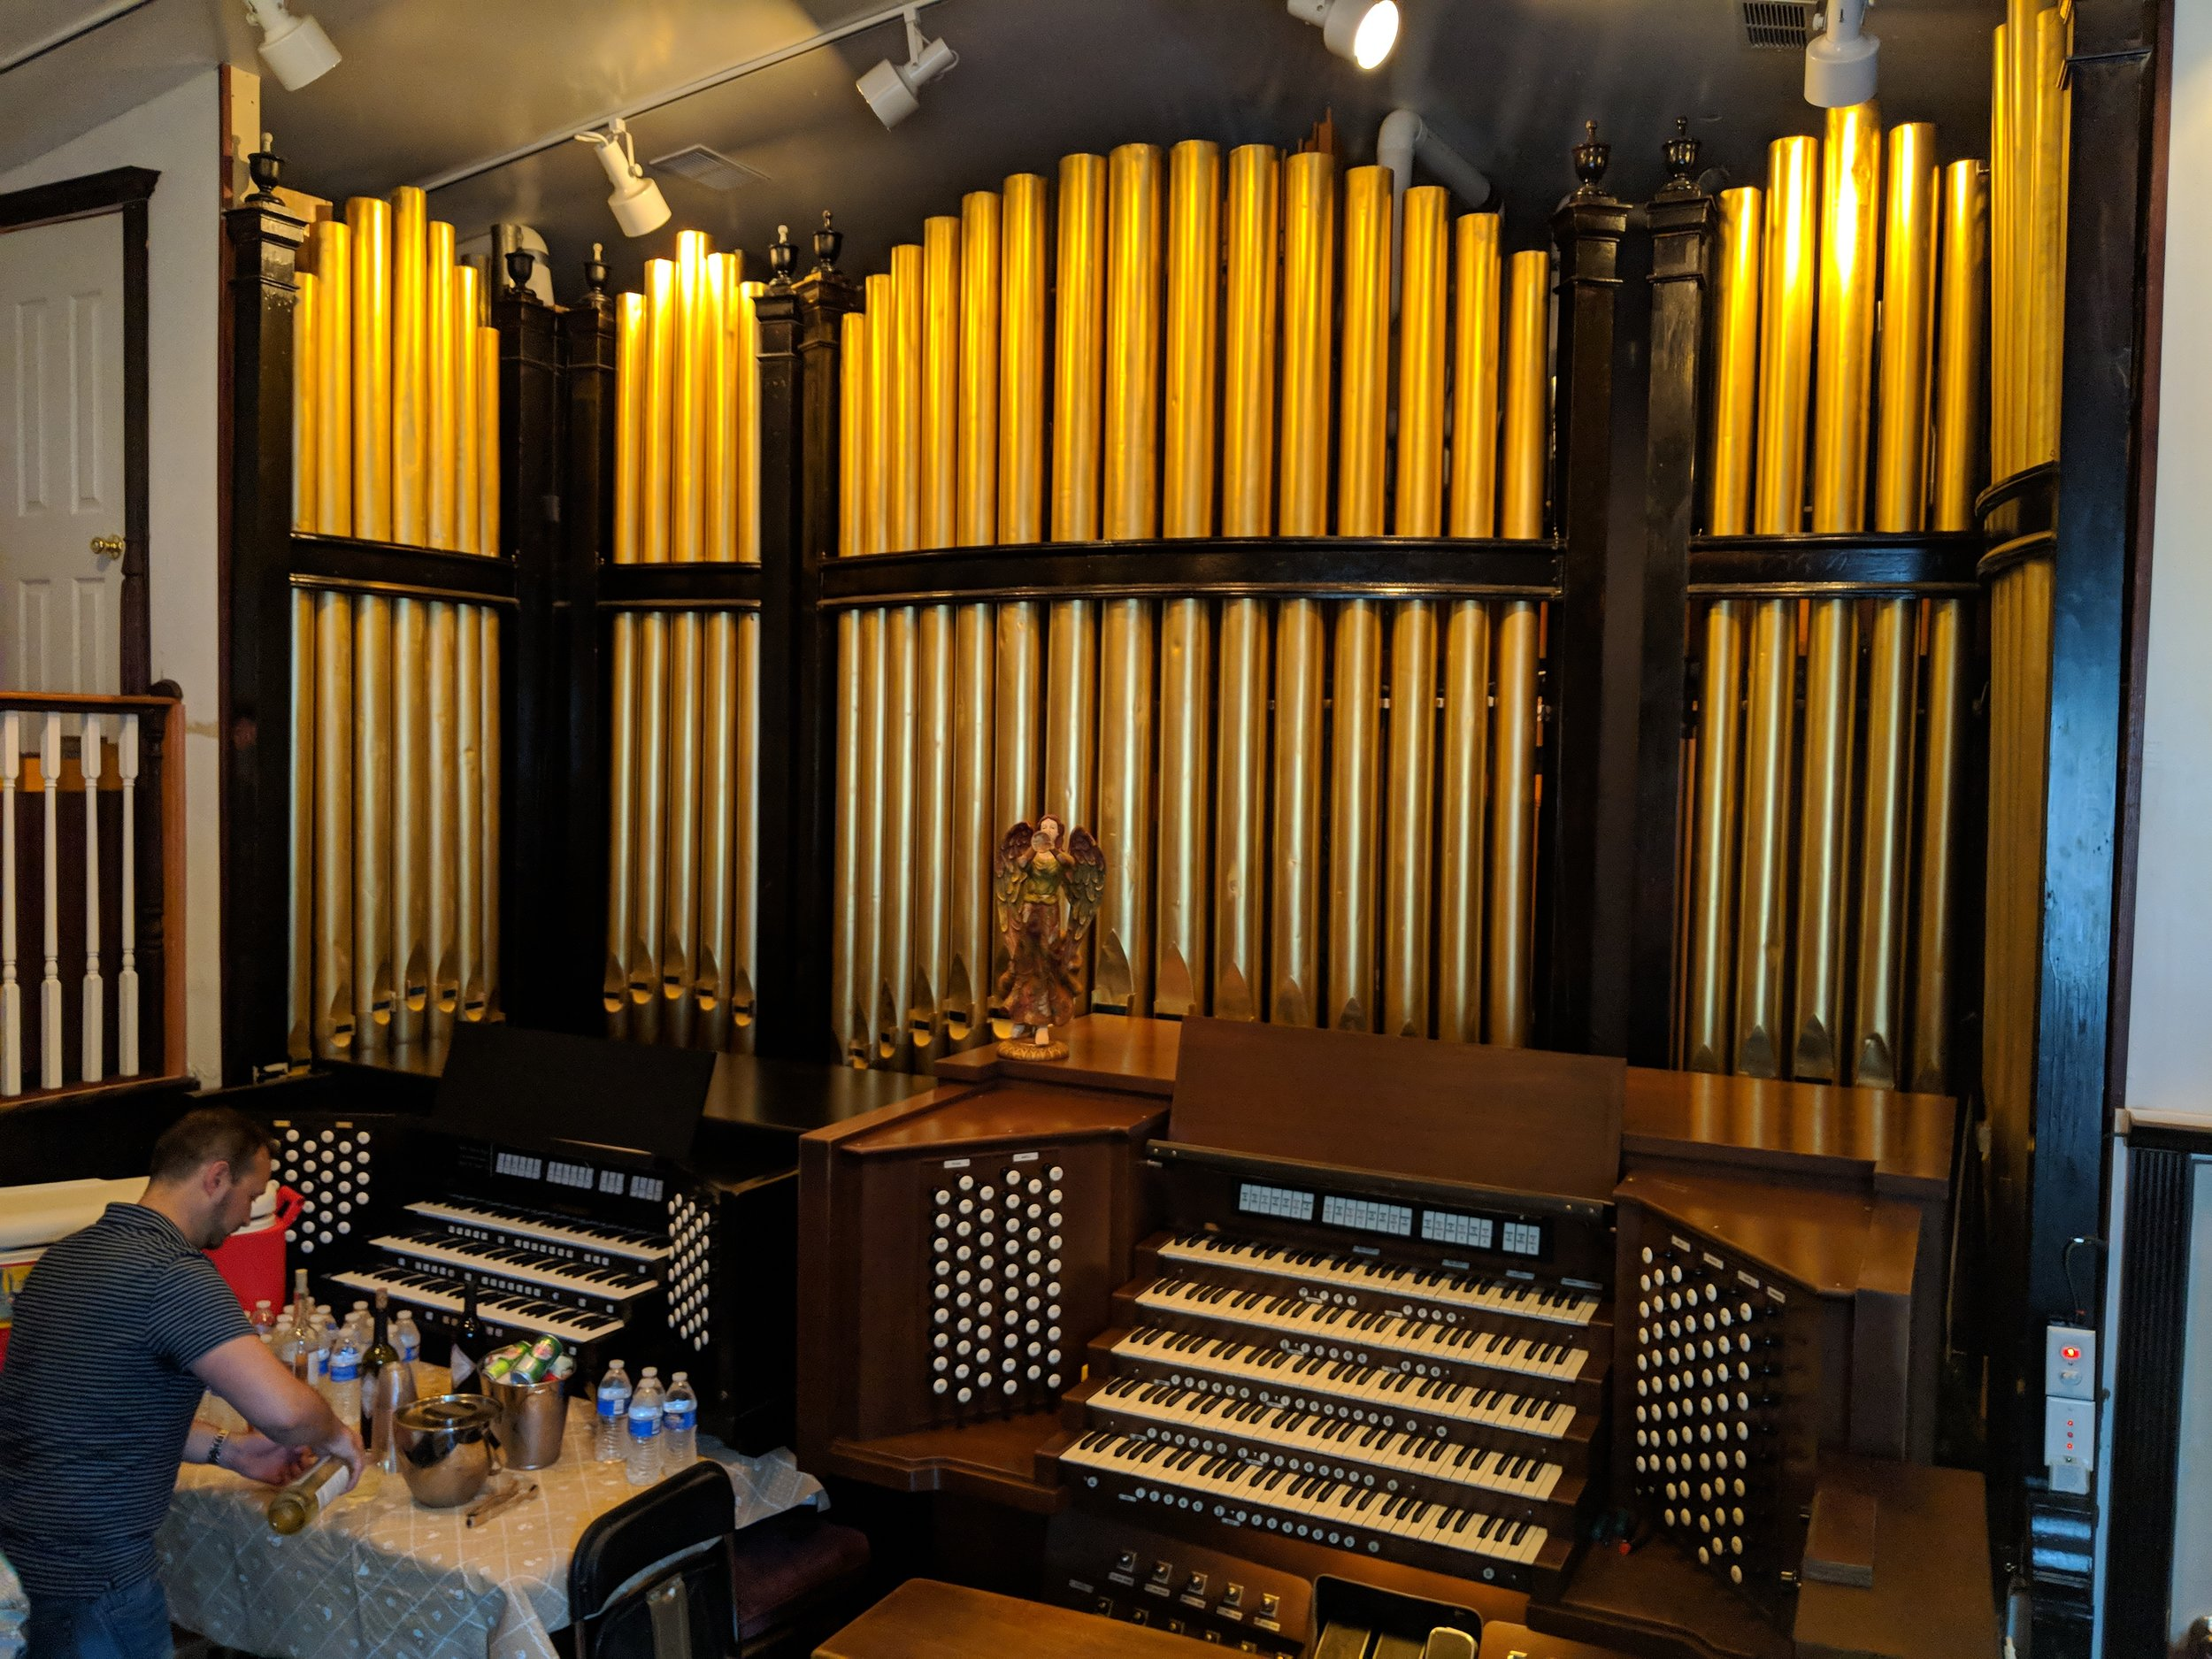 The 86 Rank Pipe Organ